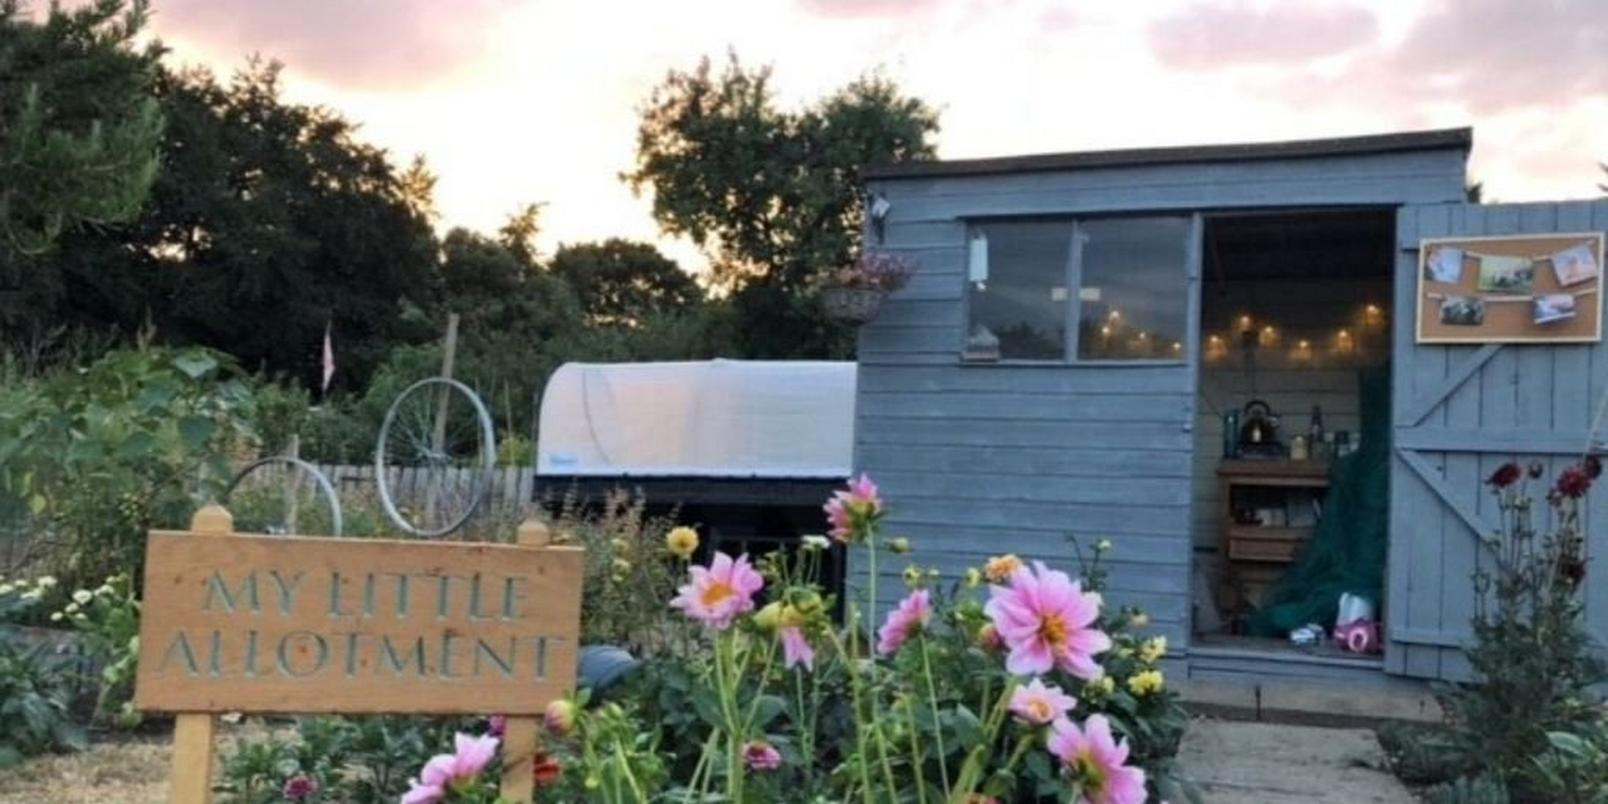 mindfloral-gardening-therapy-kirsty-ward-3